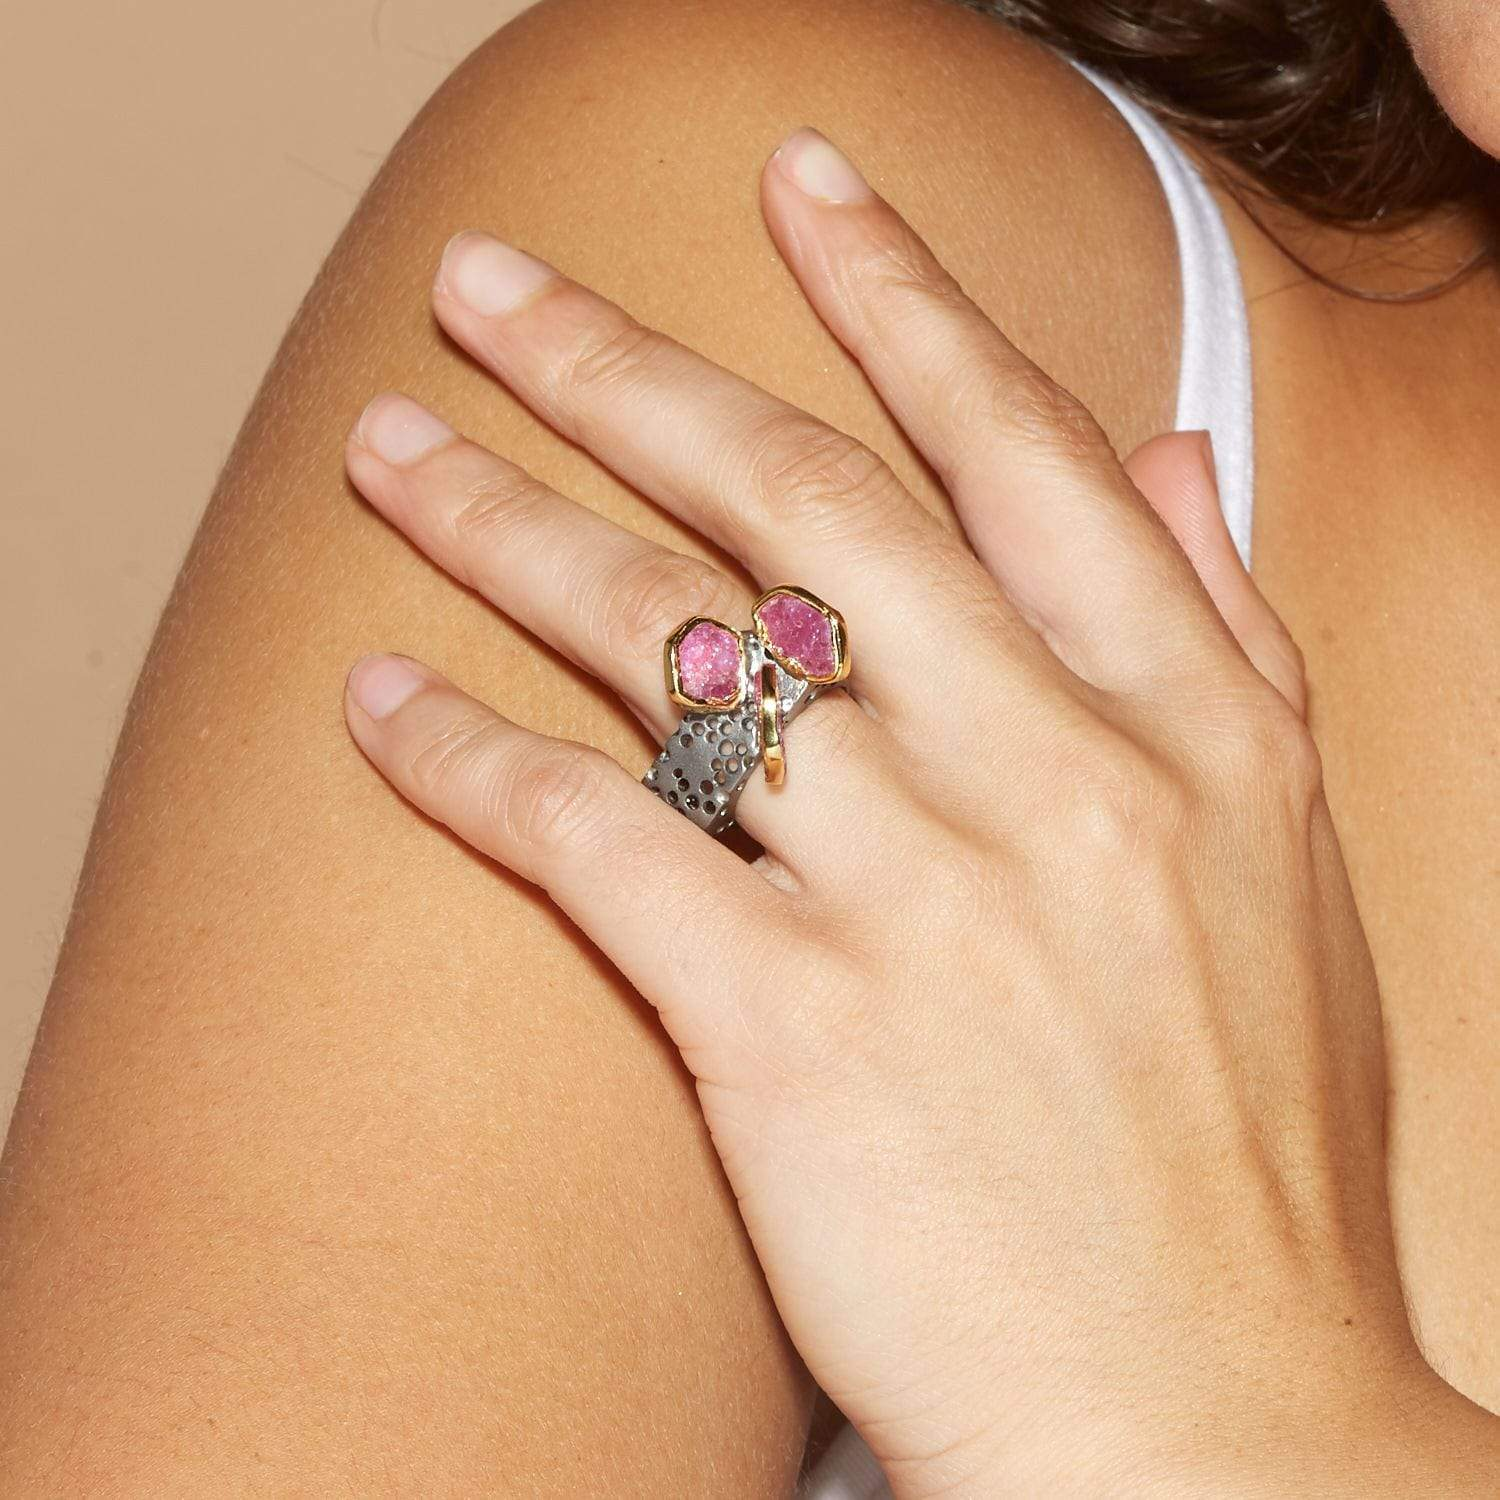 Metara Ring, Gold, gray, Handmade, Rhodium, Ruby, spo-disabled, StoneColor:Pink, Style:Fantasy, Type:StoneCandyOut Ring